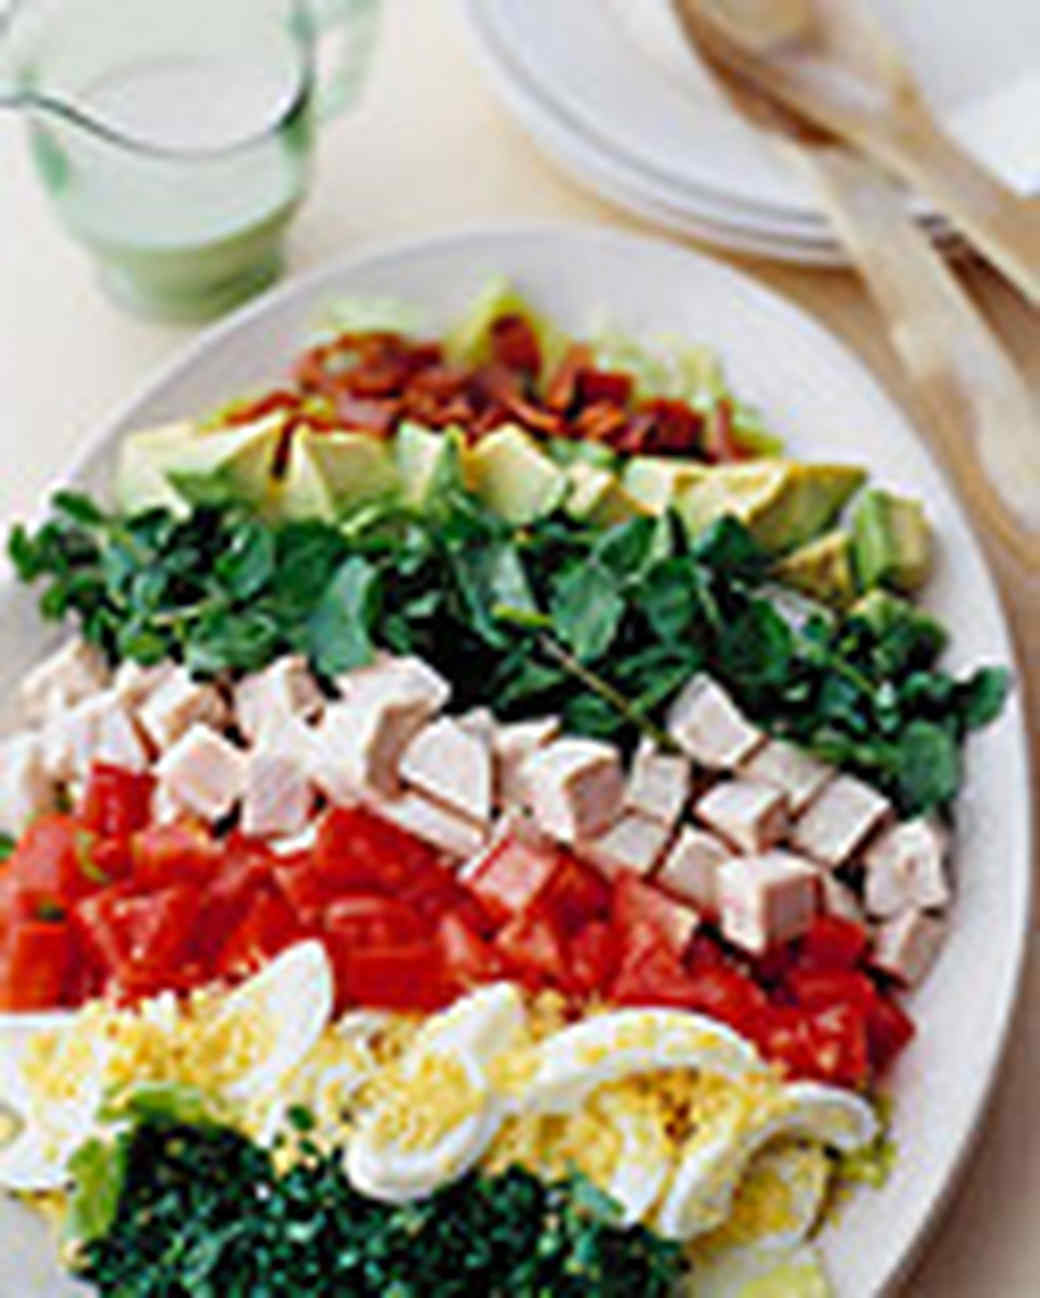 Healthy Salads To Eat  Healthy Salad Recipes Perfect for a Main or Side Dish